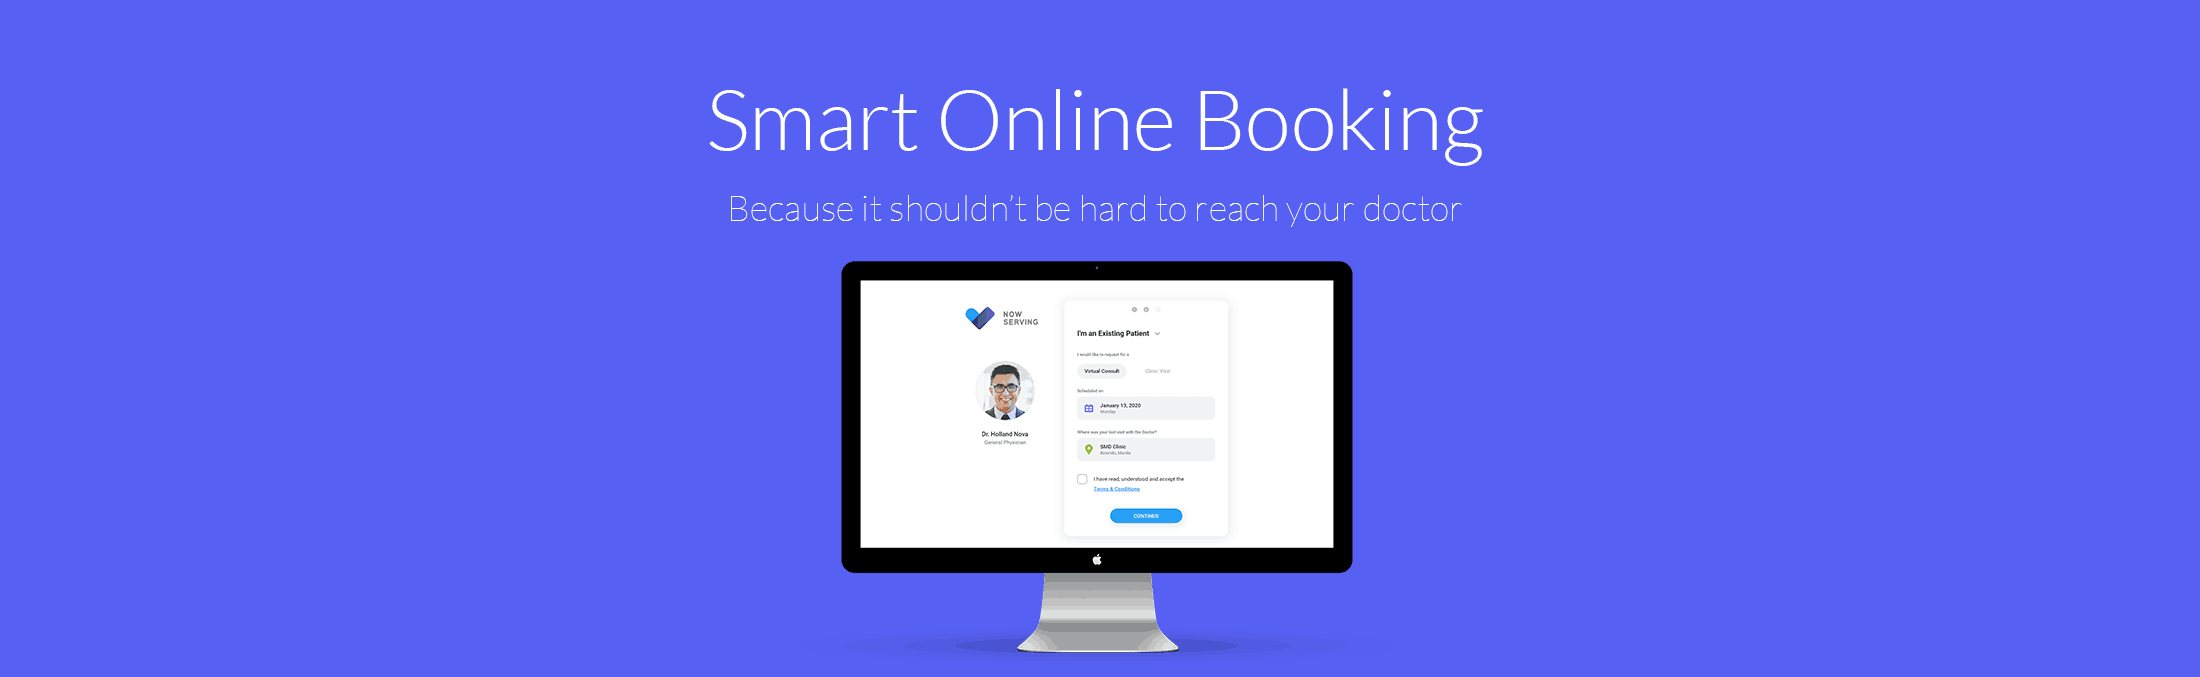 Book a doctor online